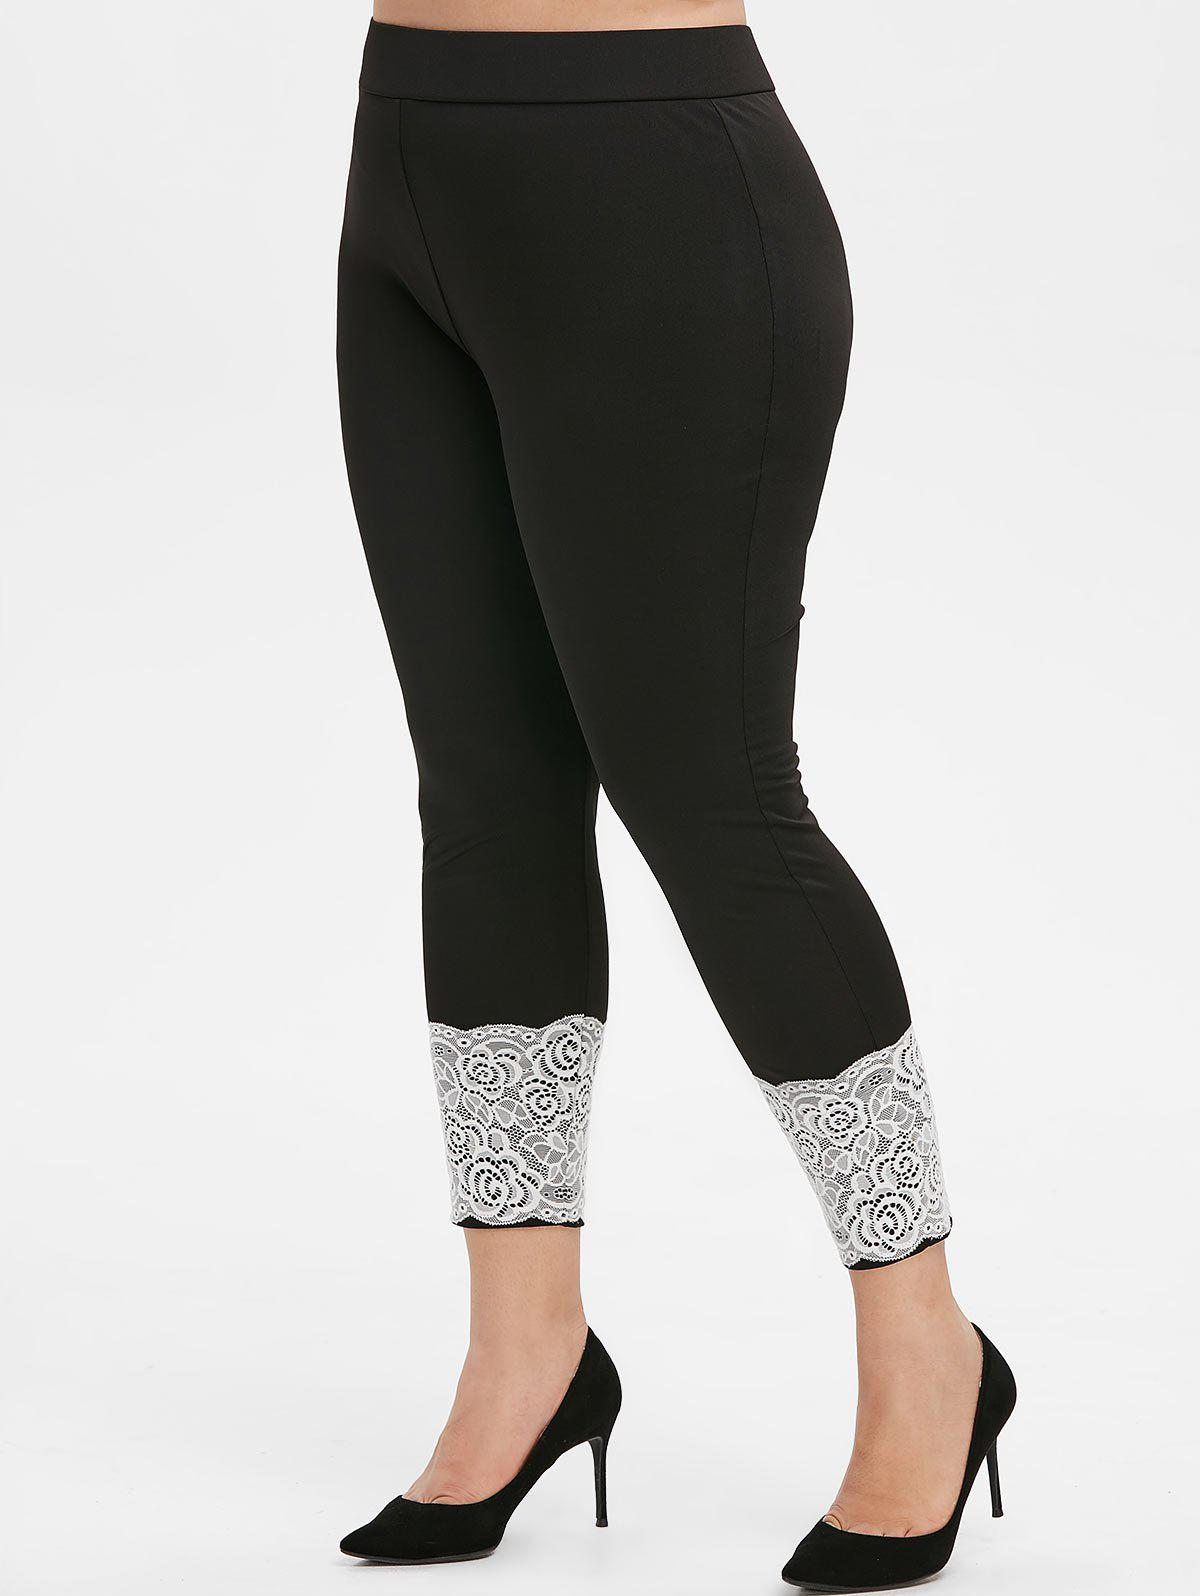 Plus Size Floral Lace Insert Fitted Leggings - BLACK 2X